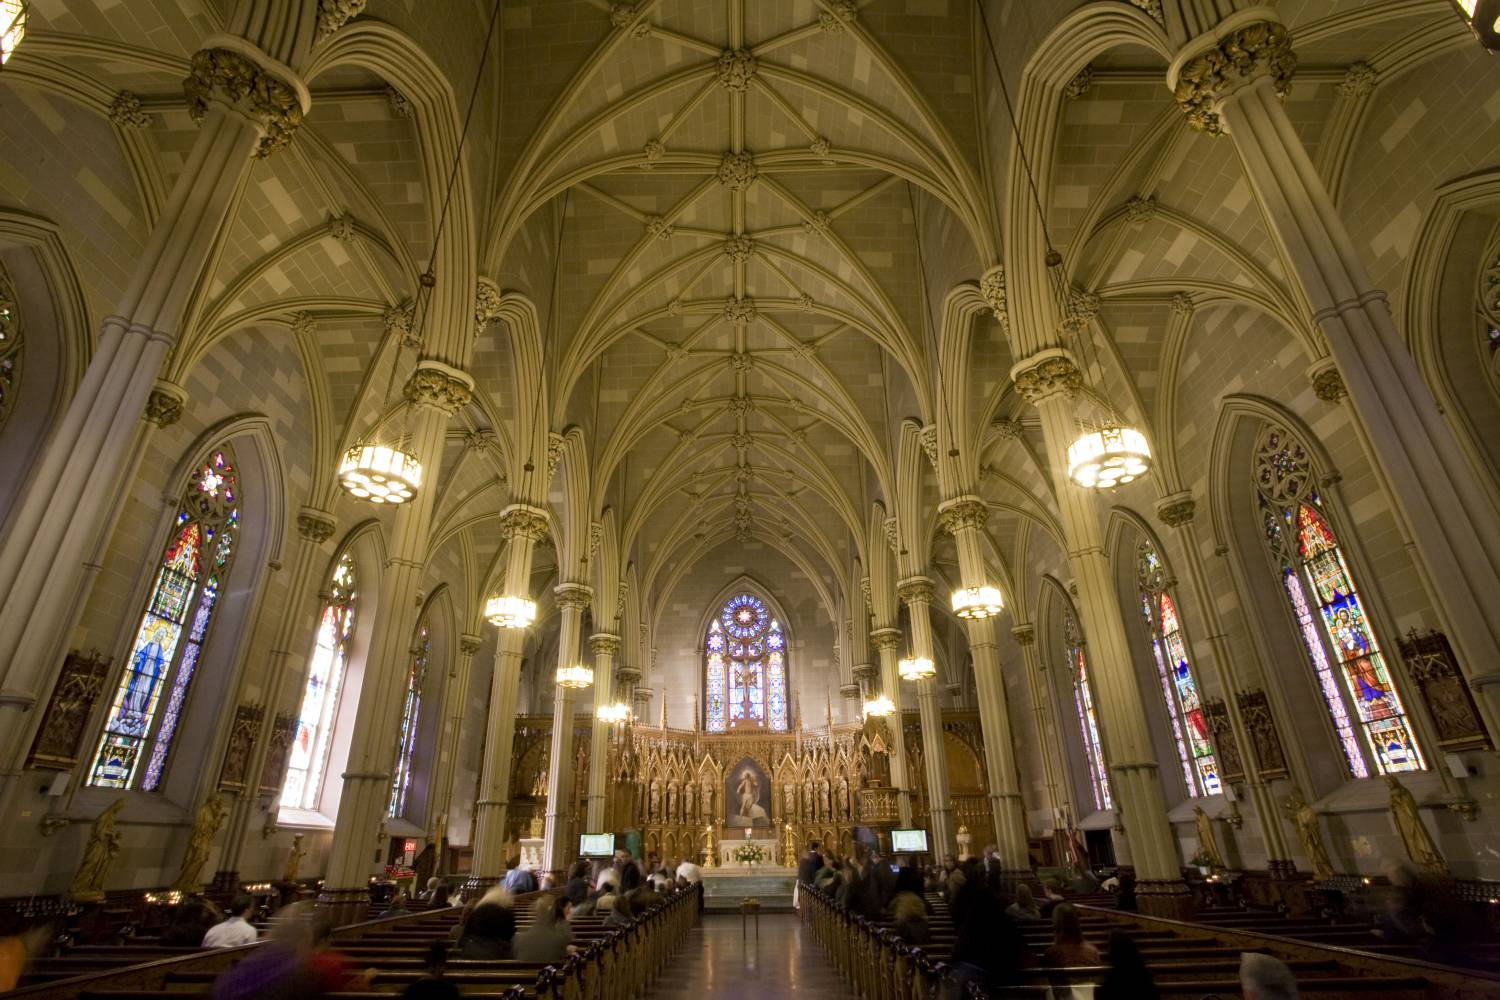 St. Patrick's Old Cathedral, interior